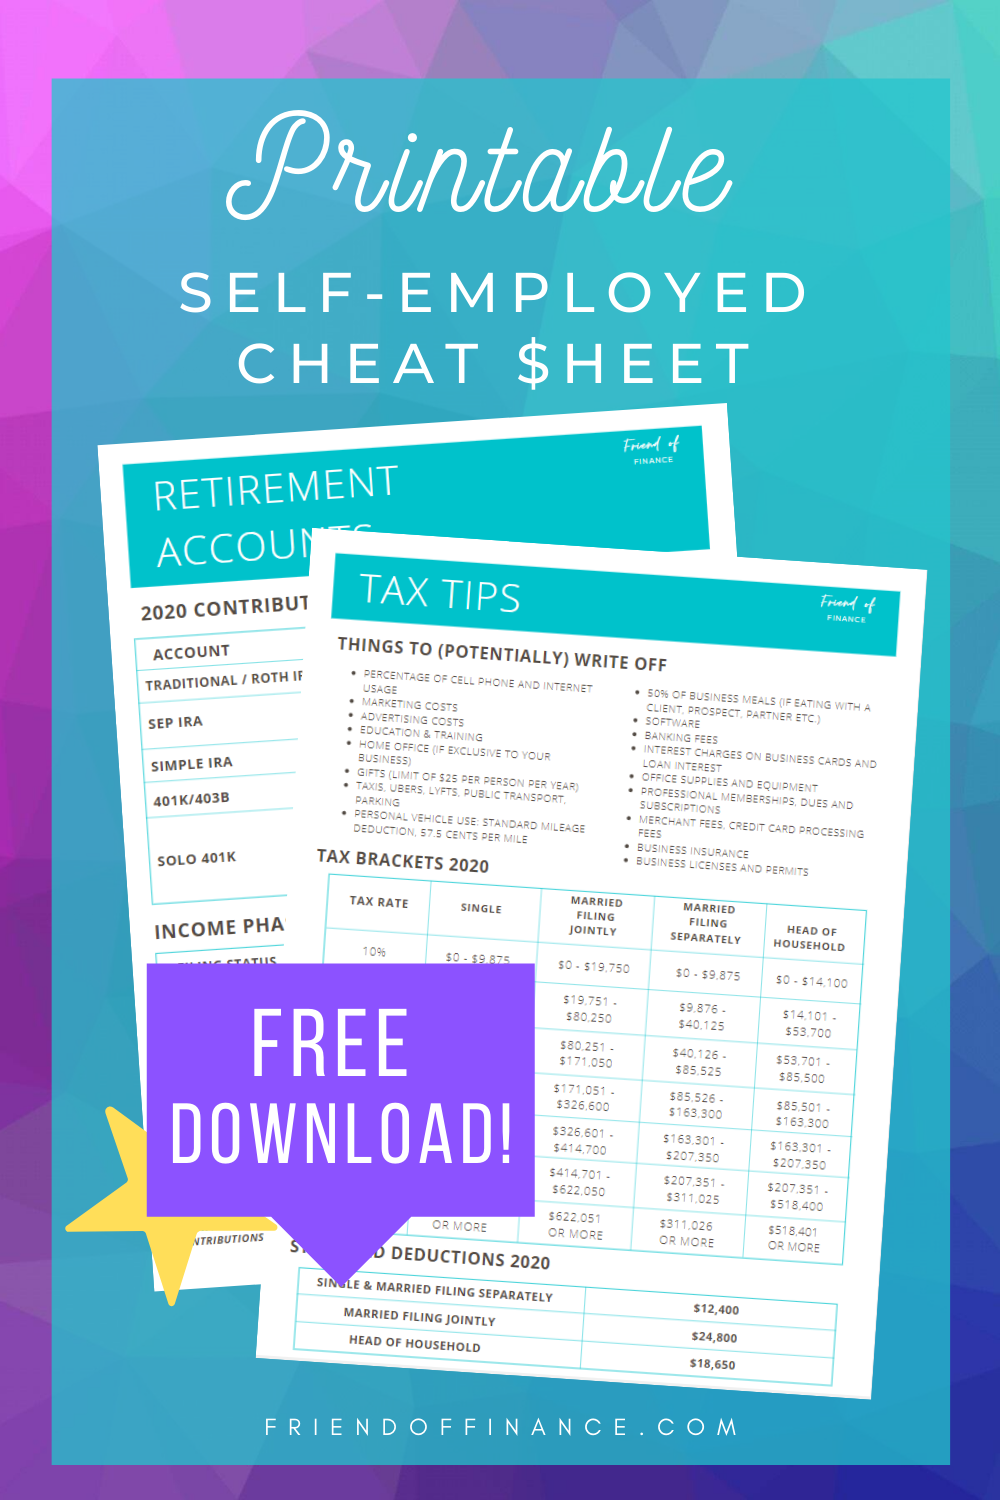 Self-employed or have some money from a side-hustle? Hellooo extra savings! Grab one of these financial cheat sheets so you don't miss any of the important things; tax deadlines, write-offs, retirement account limits and more! #savingmoney #selfemployed #taxes #businessfinance #personalfinance #printable #freedownload #investing #retirement #FIRE #moneytips #taxtips